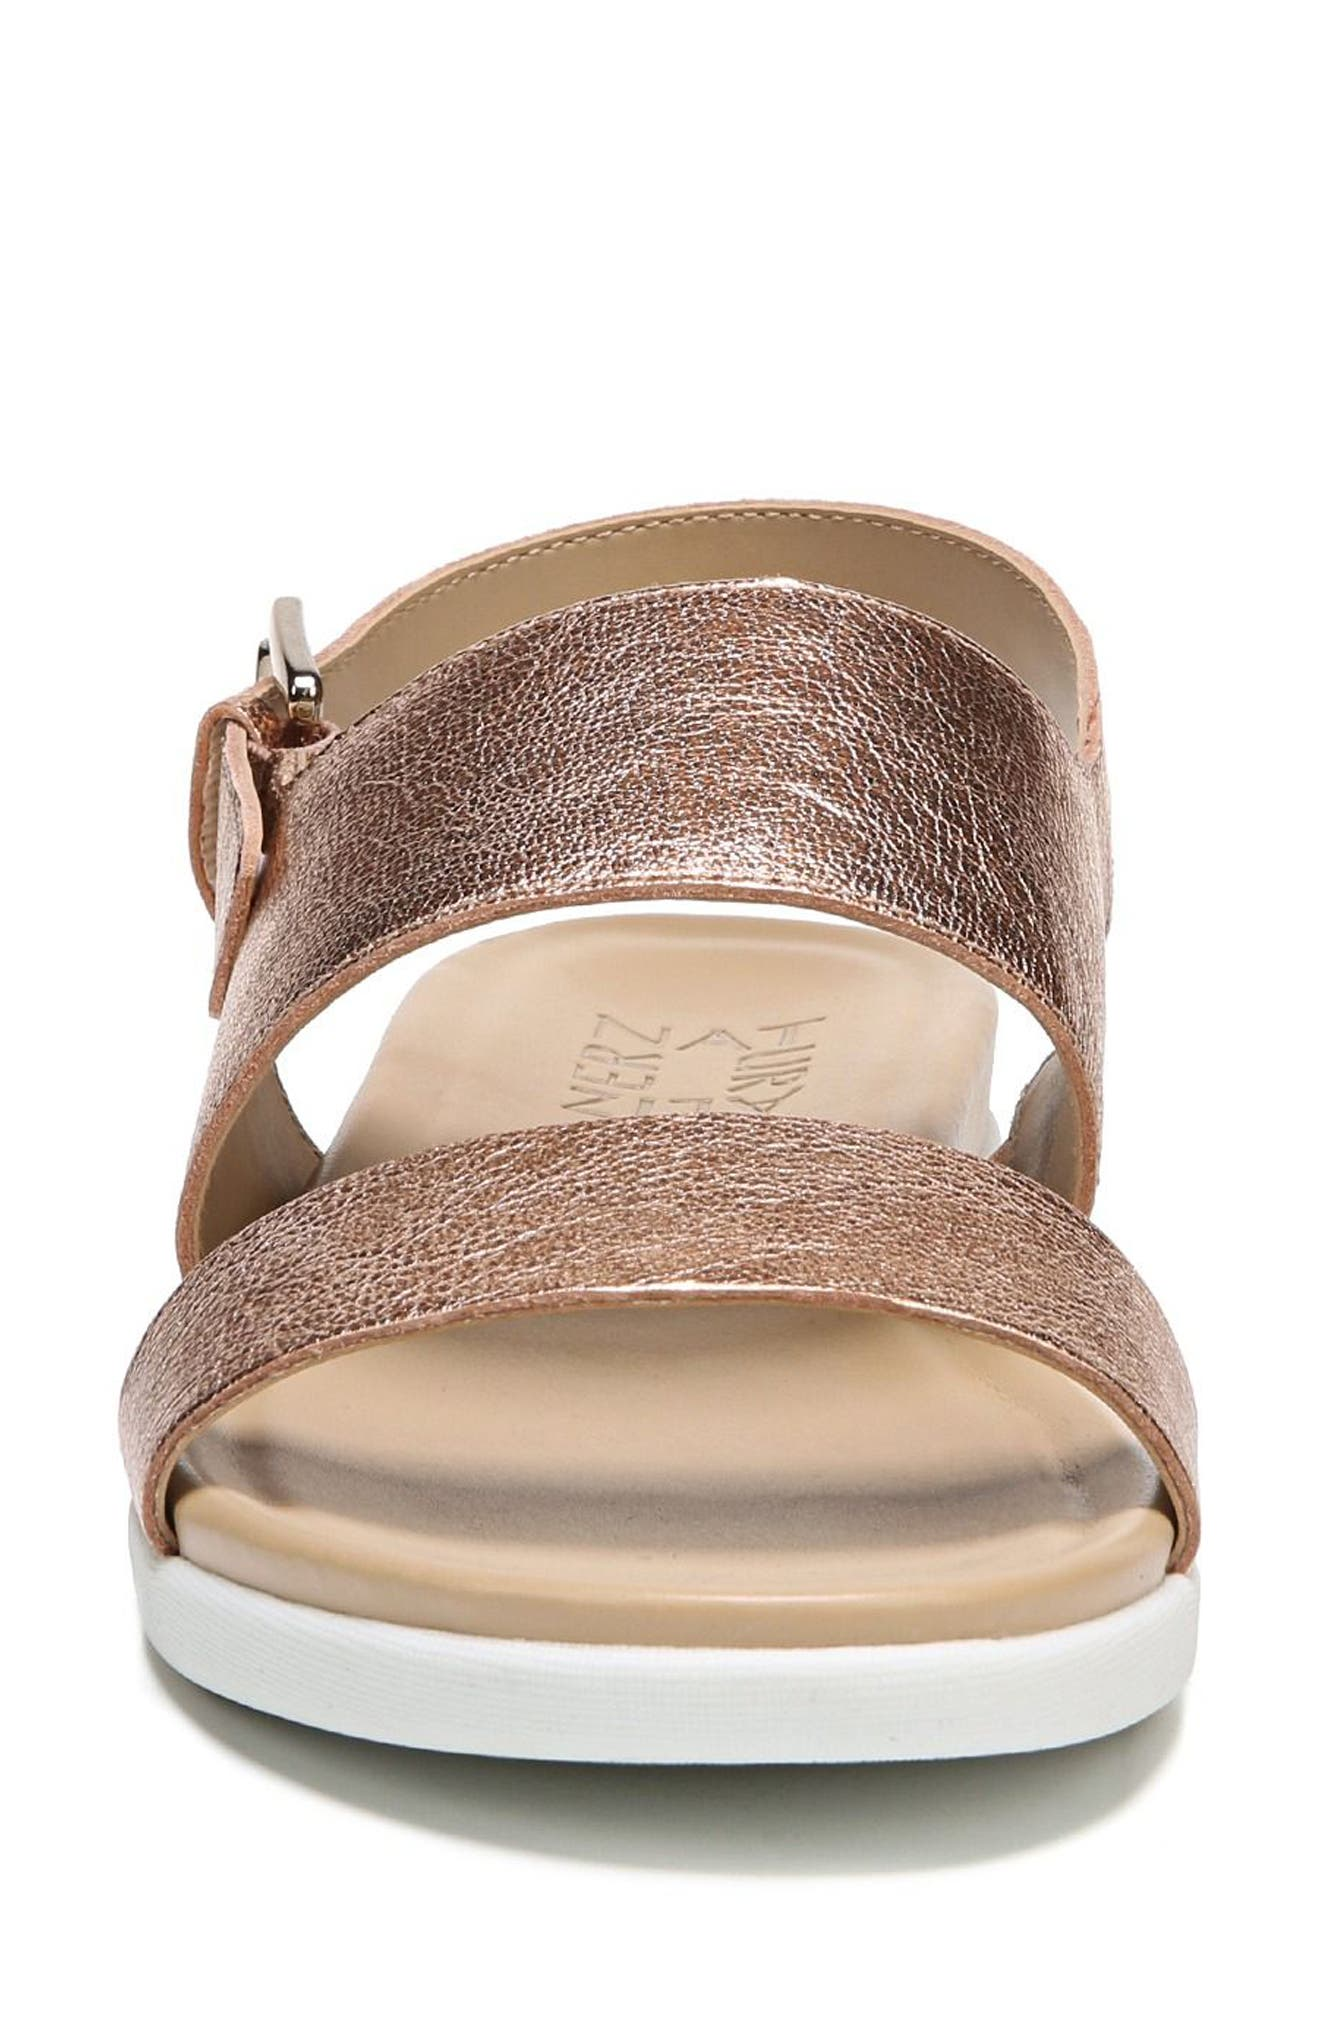 Emory Wedge Sandal,                             Alternate thumbnail 4, color,                             Copper Leather